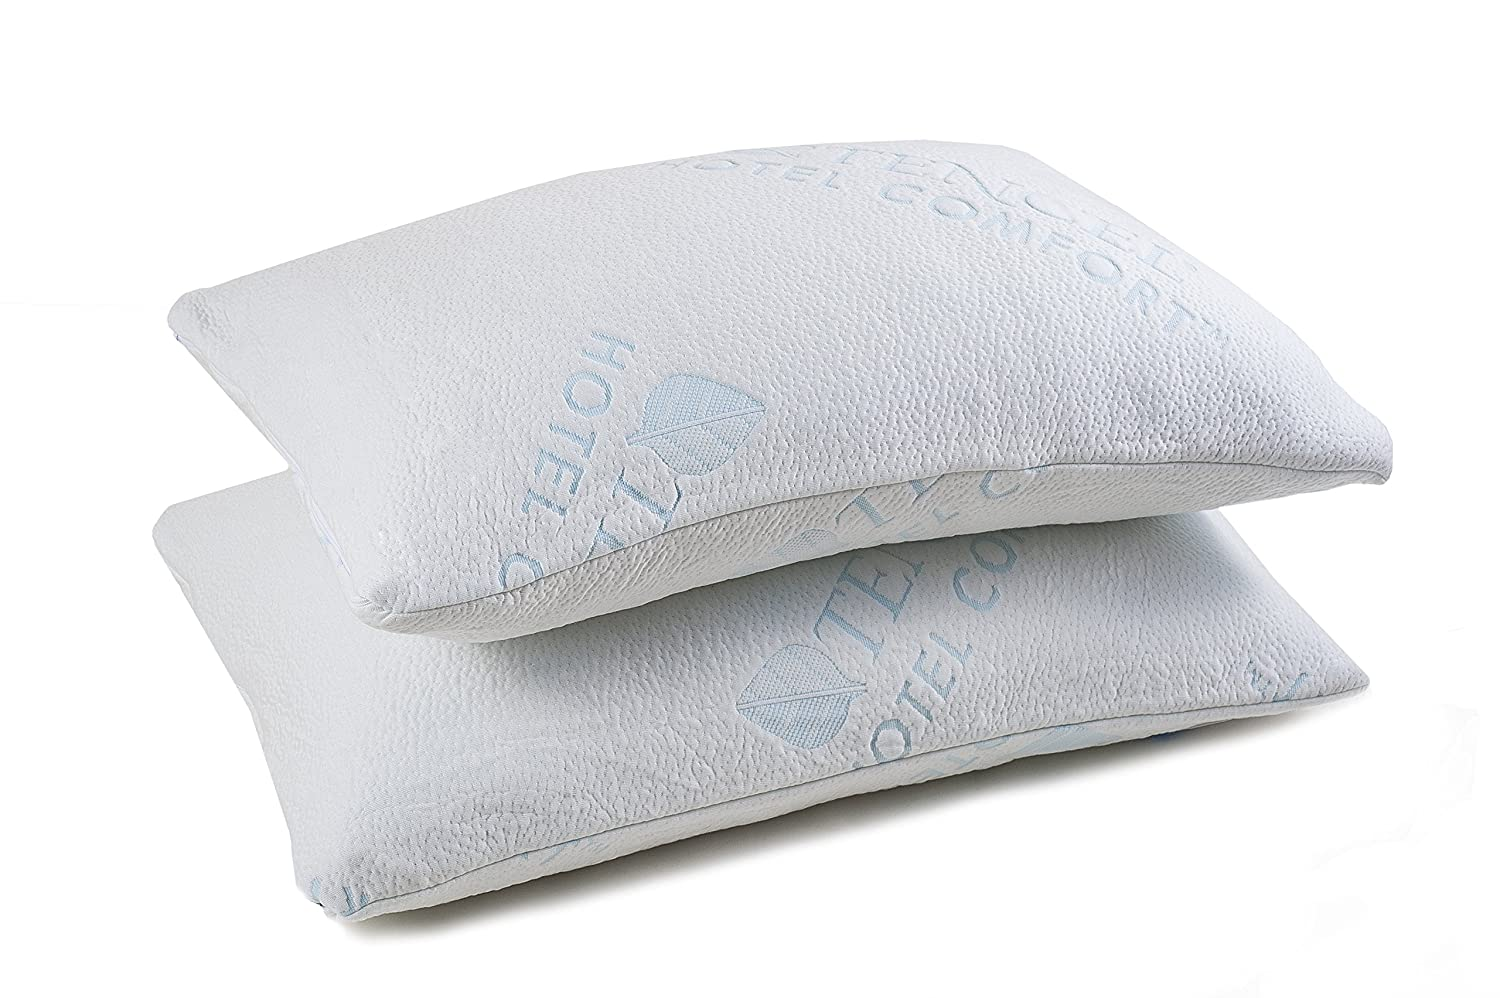 Hotel Comfort Shredded Memory Foam Pillow with Bamboo Cover